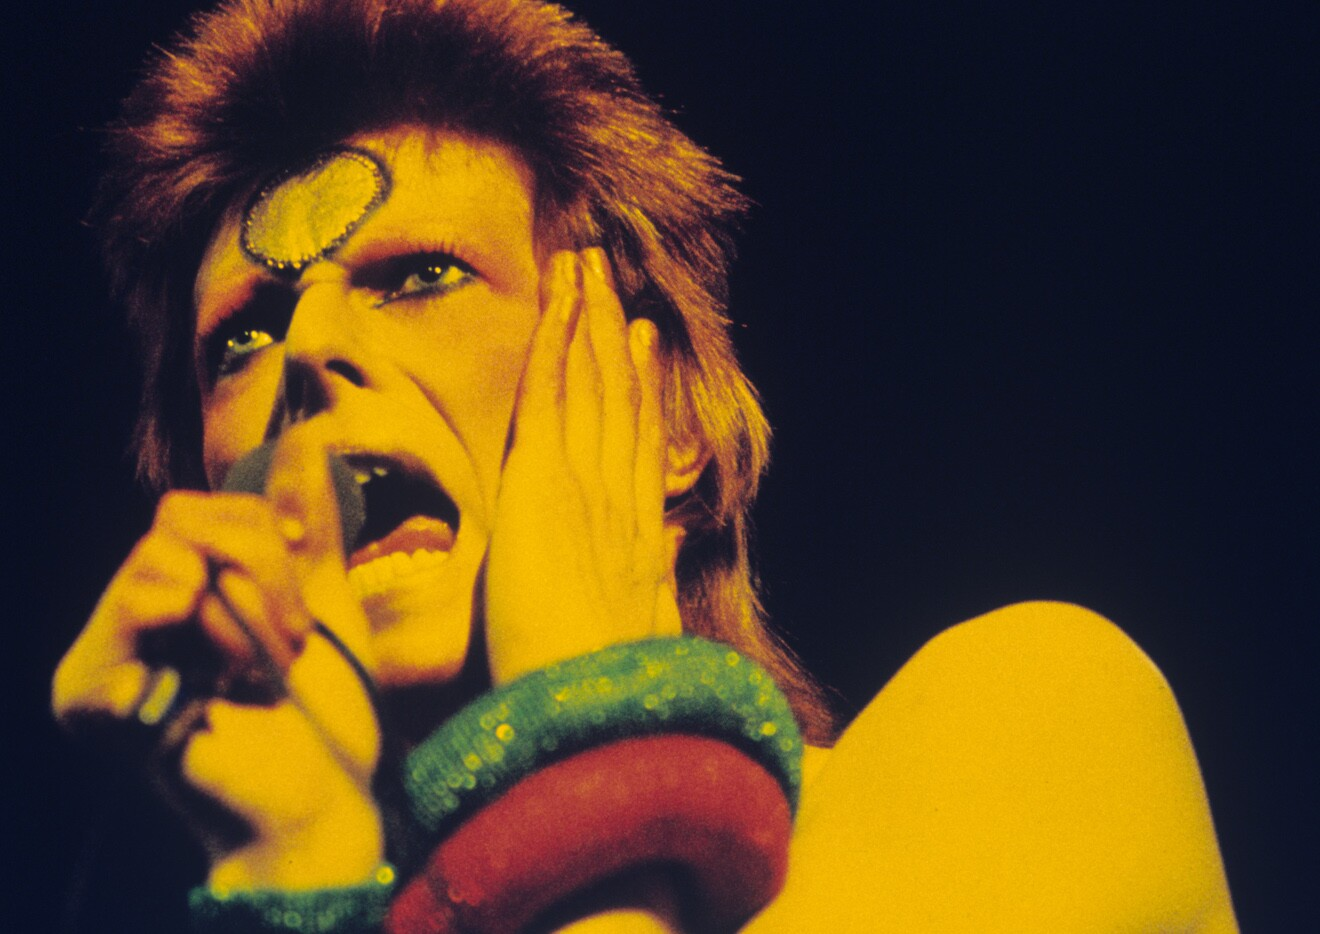 A New Biography Tells the Story of All the David Bowies